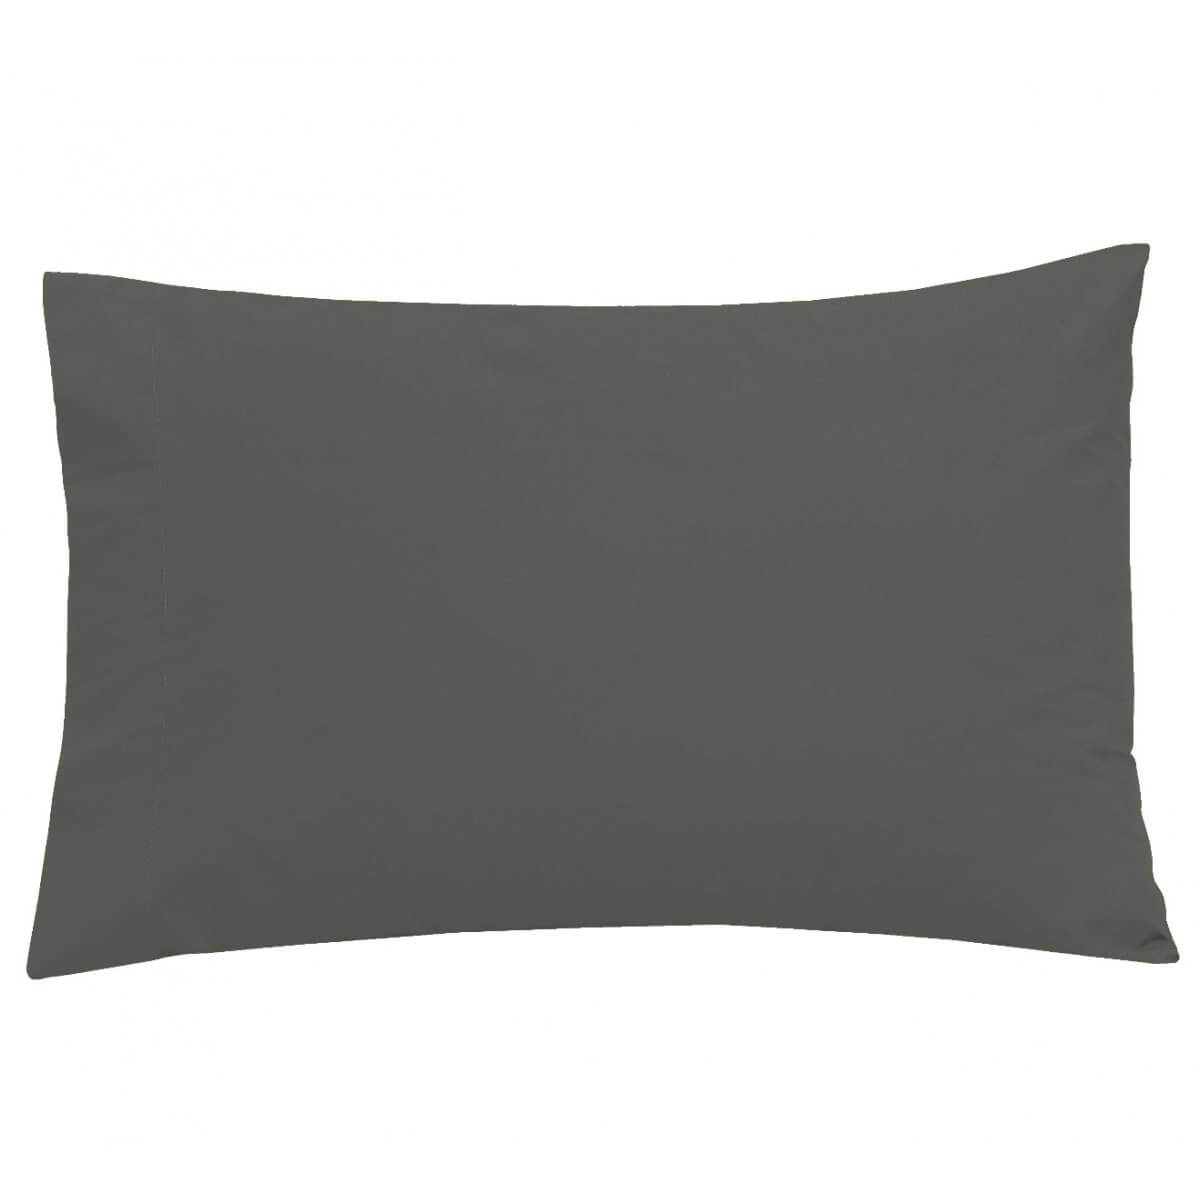 Easy Care Non-Iron Housewife Pillowcase Charcoal - Pair